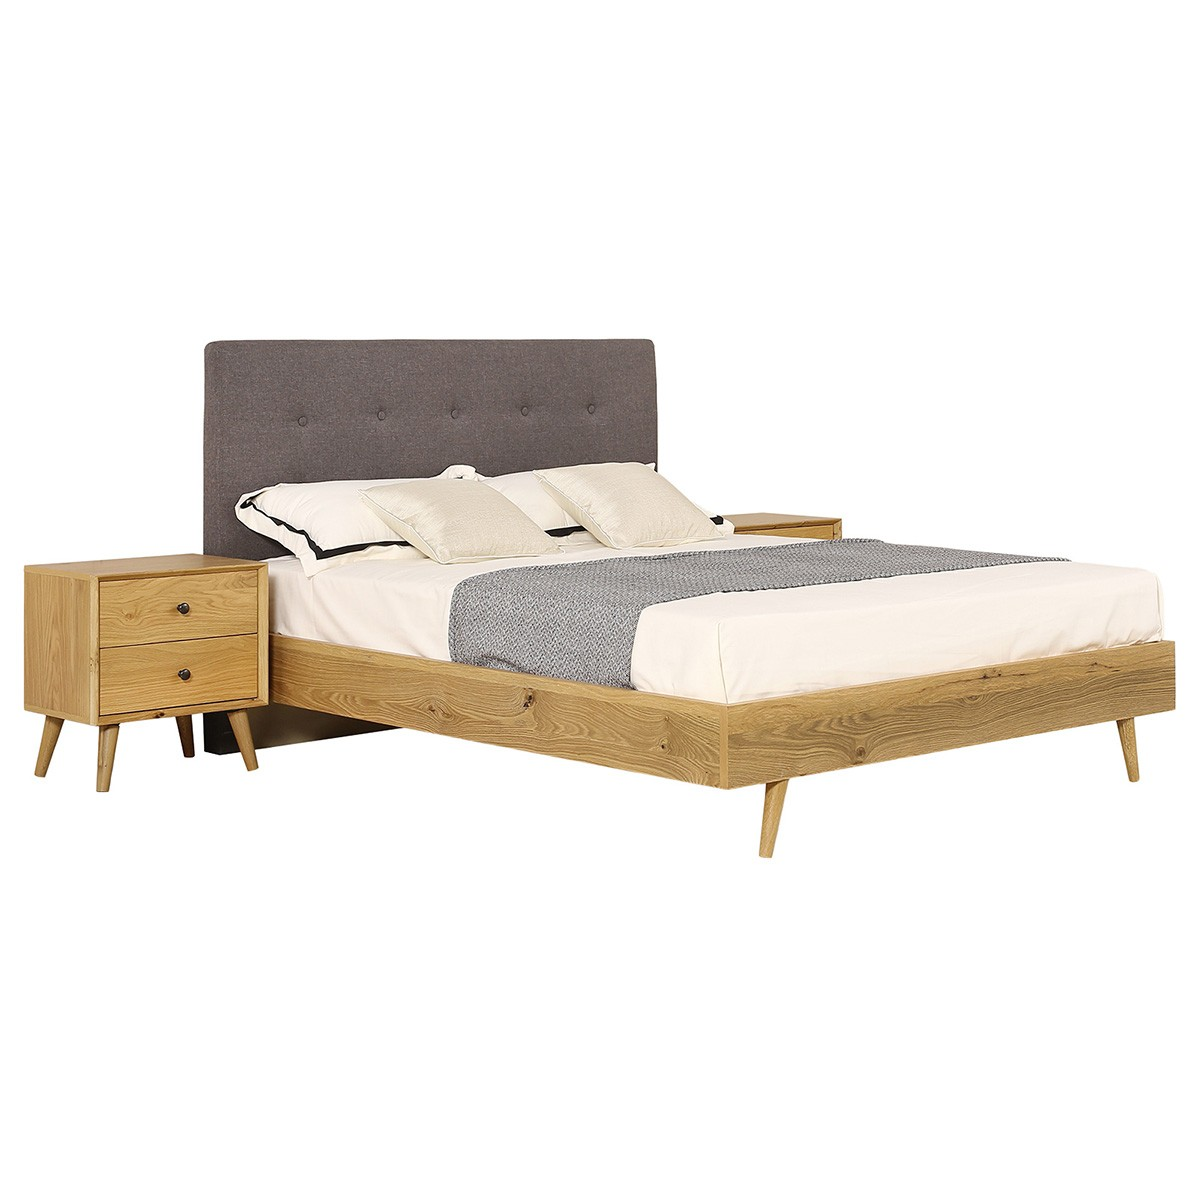 Winona American Oak Timber Bed, King